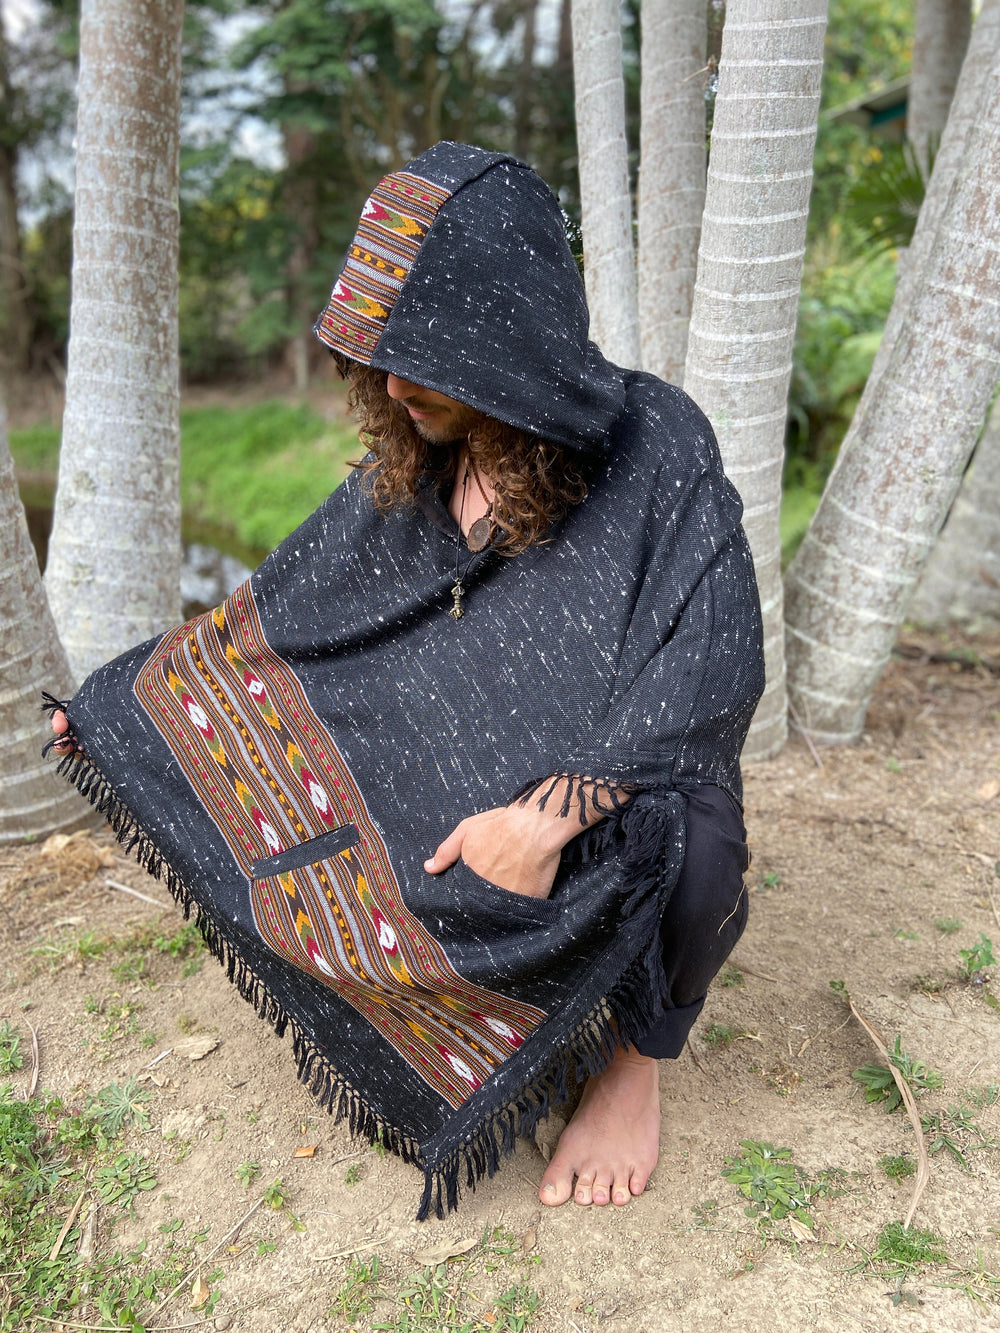 NAMA Hooded Poncho Dark Grey Black Handwoven Wool Premium Pure Cashmere Hood Zen Embroidery Boho Gypsy Festival Mexican Aztec Celtic AJJAYA